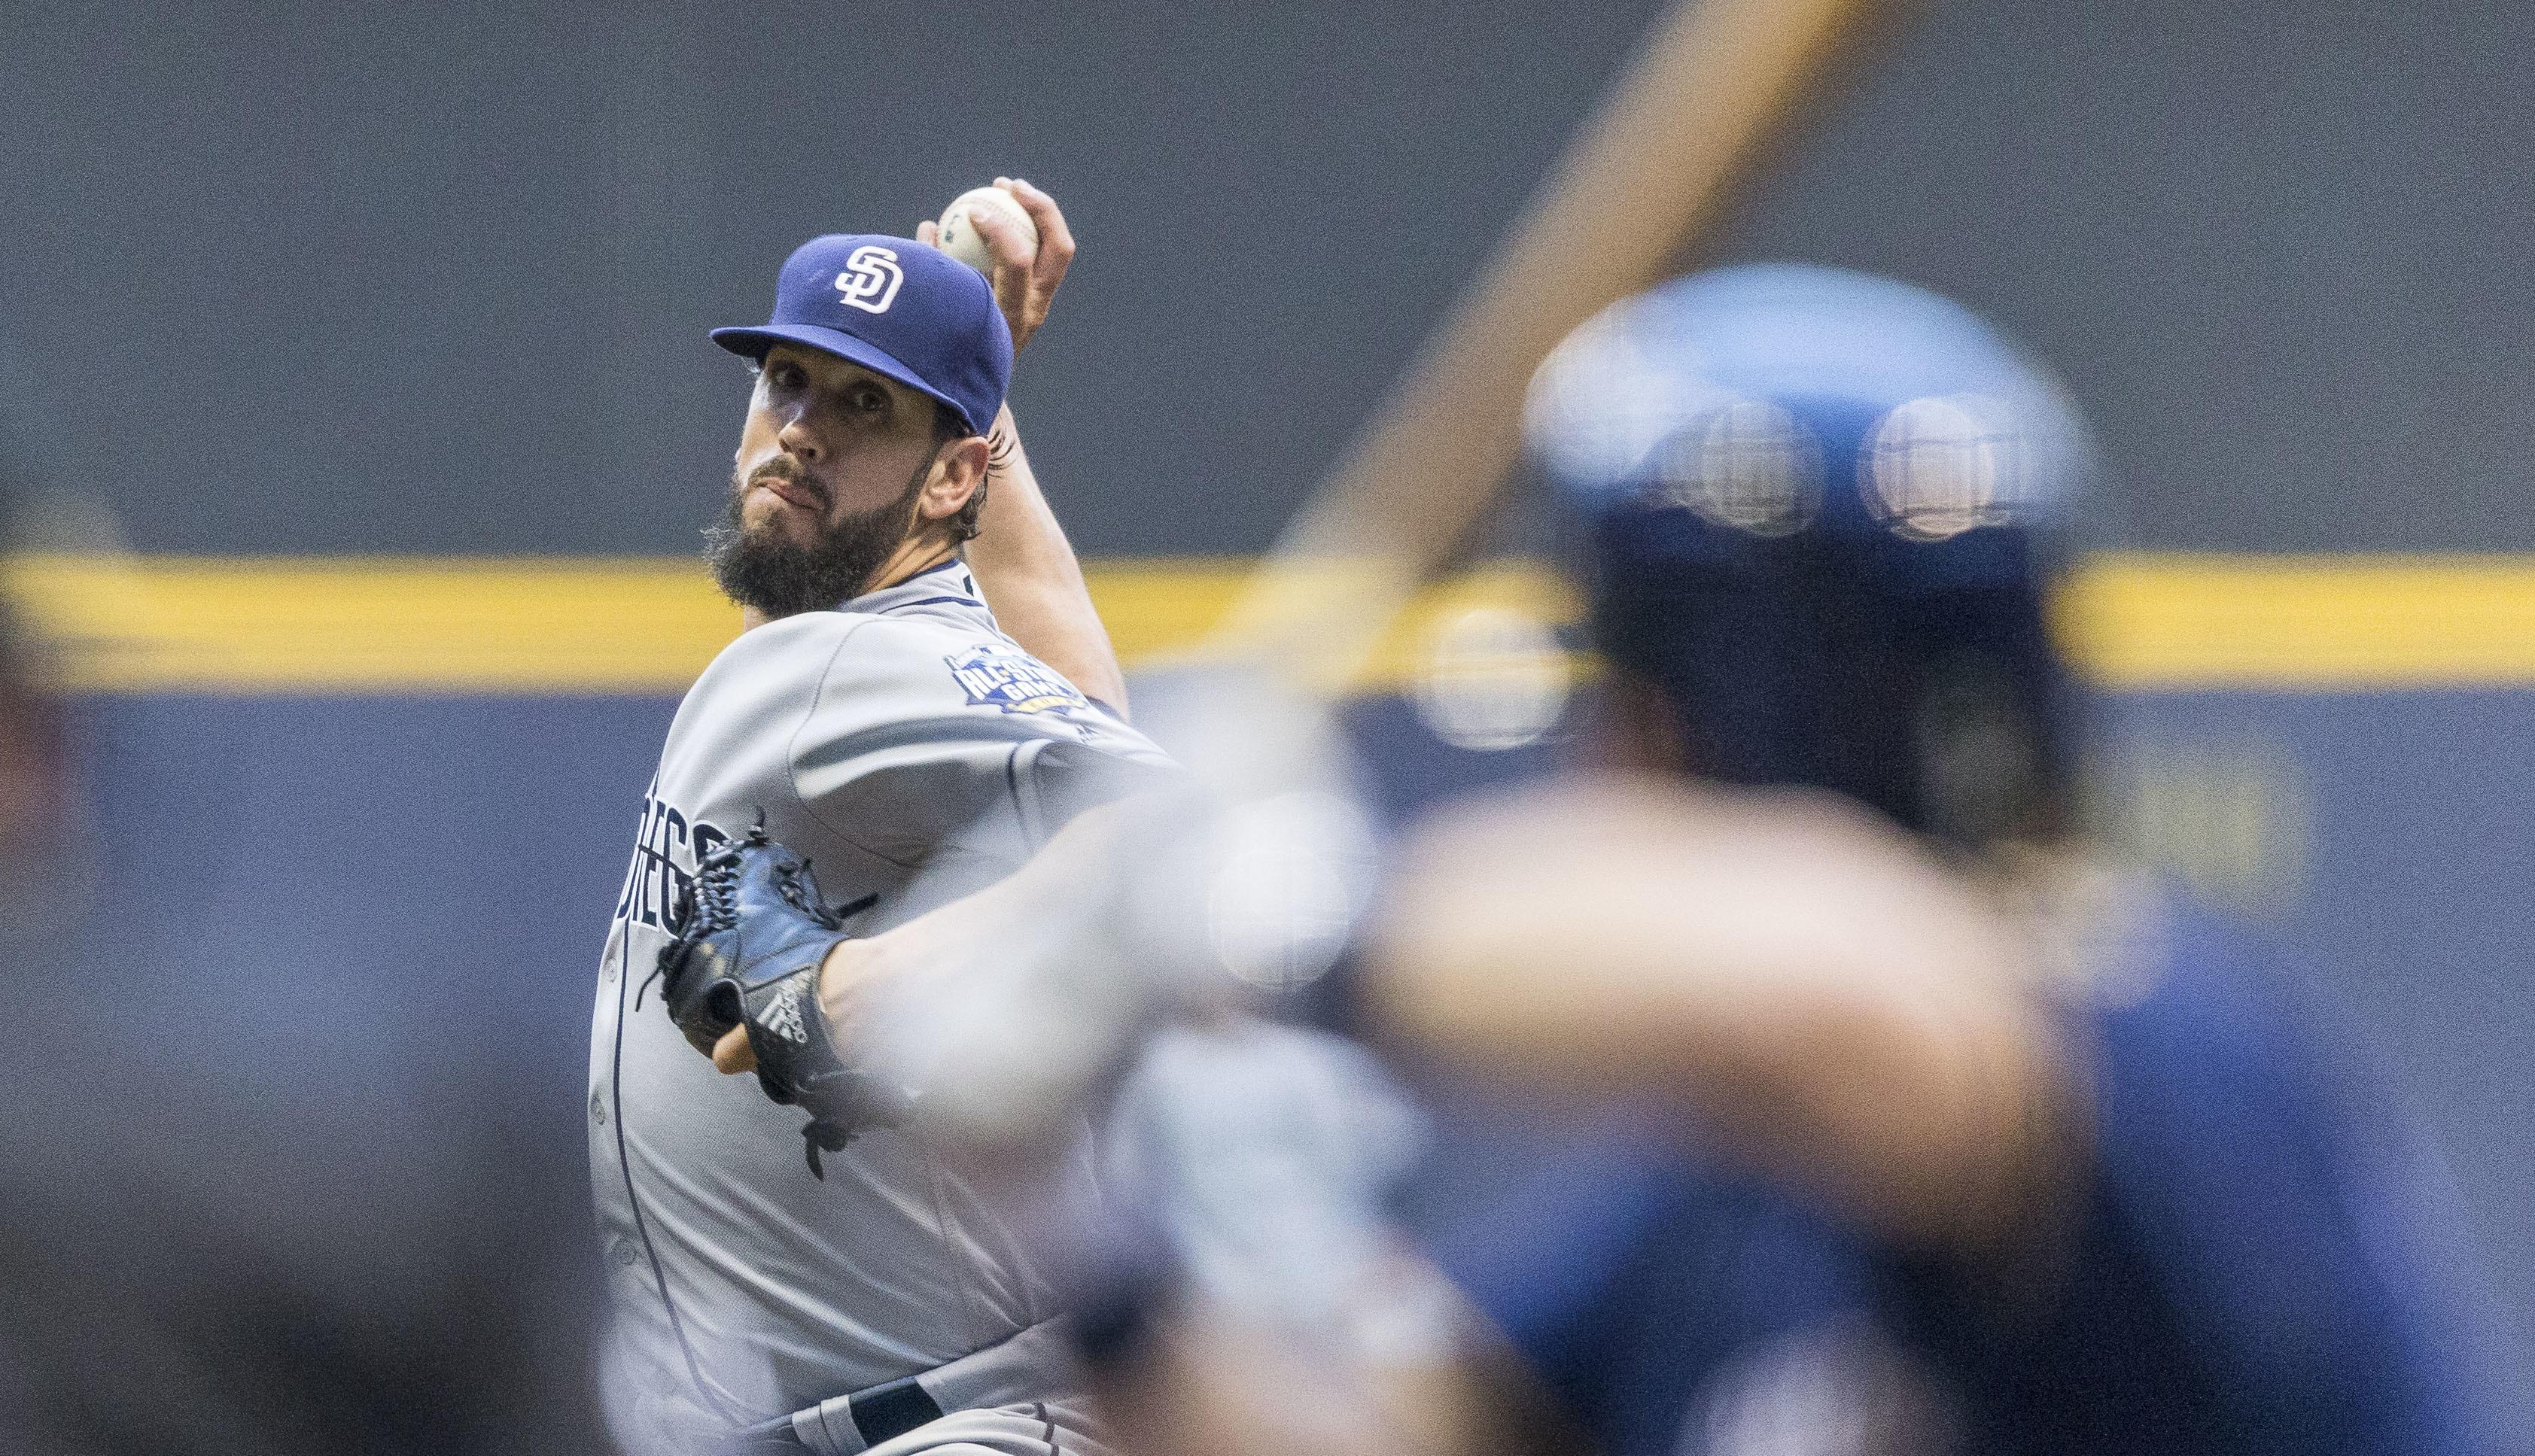 Brewers fall to Padres on HRs by Norris, Upton Jr. in 12th - Washington Times